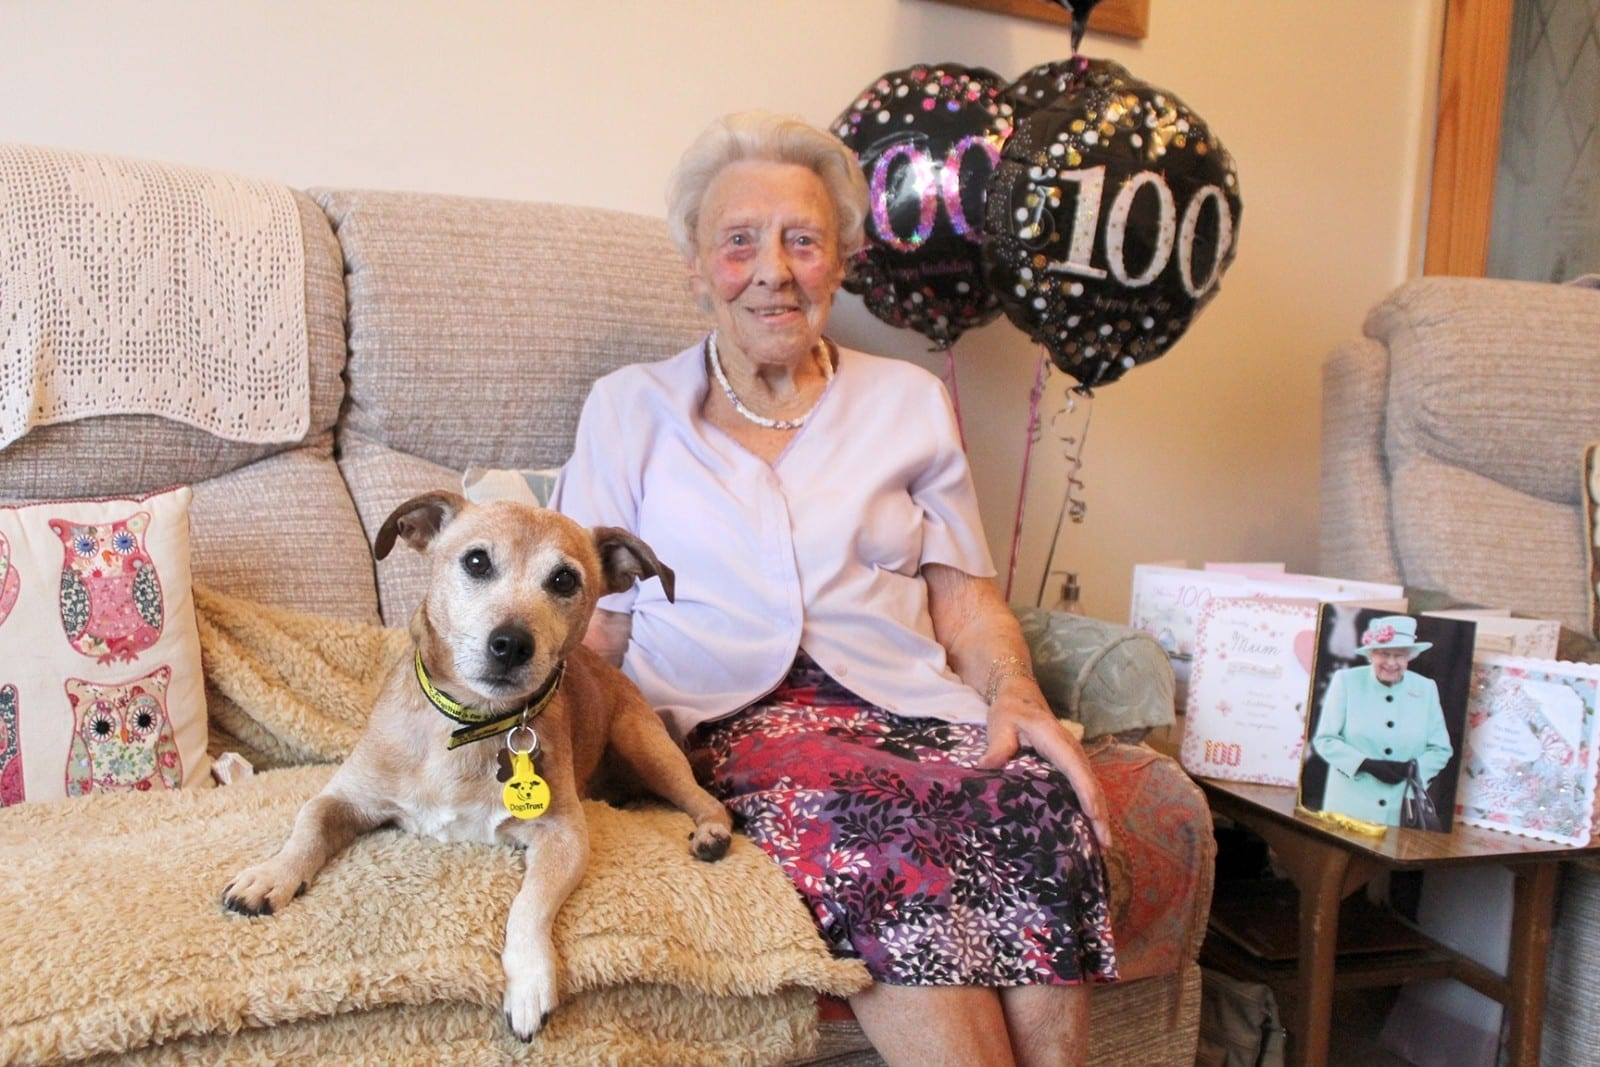 100-Year-Old Woman Has Becomes Britain's Oldest Dog Adopter After Taking In A Fellow OAP